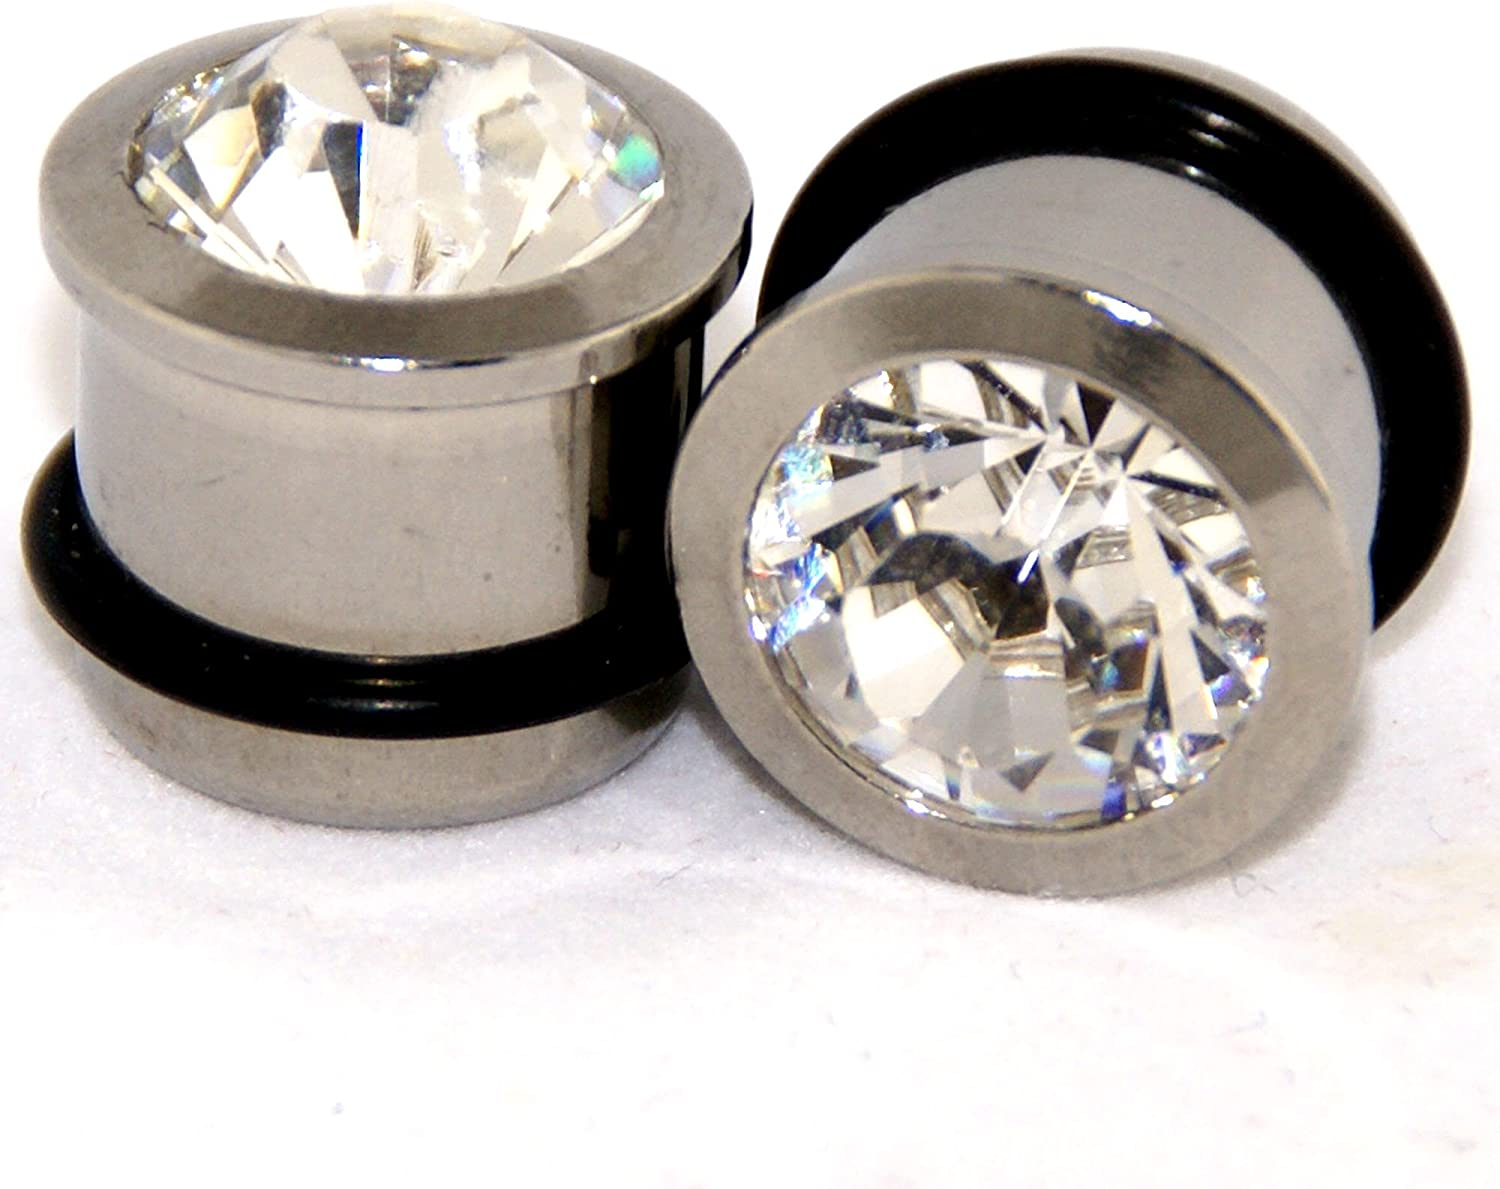 MallGoodies 2G = 6mm Black Solid Clear Faceted Crystal Gem Retainer Ear Plugs 1 Pair